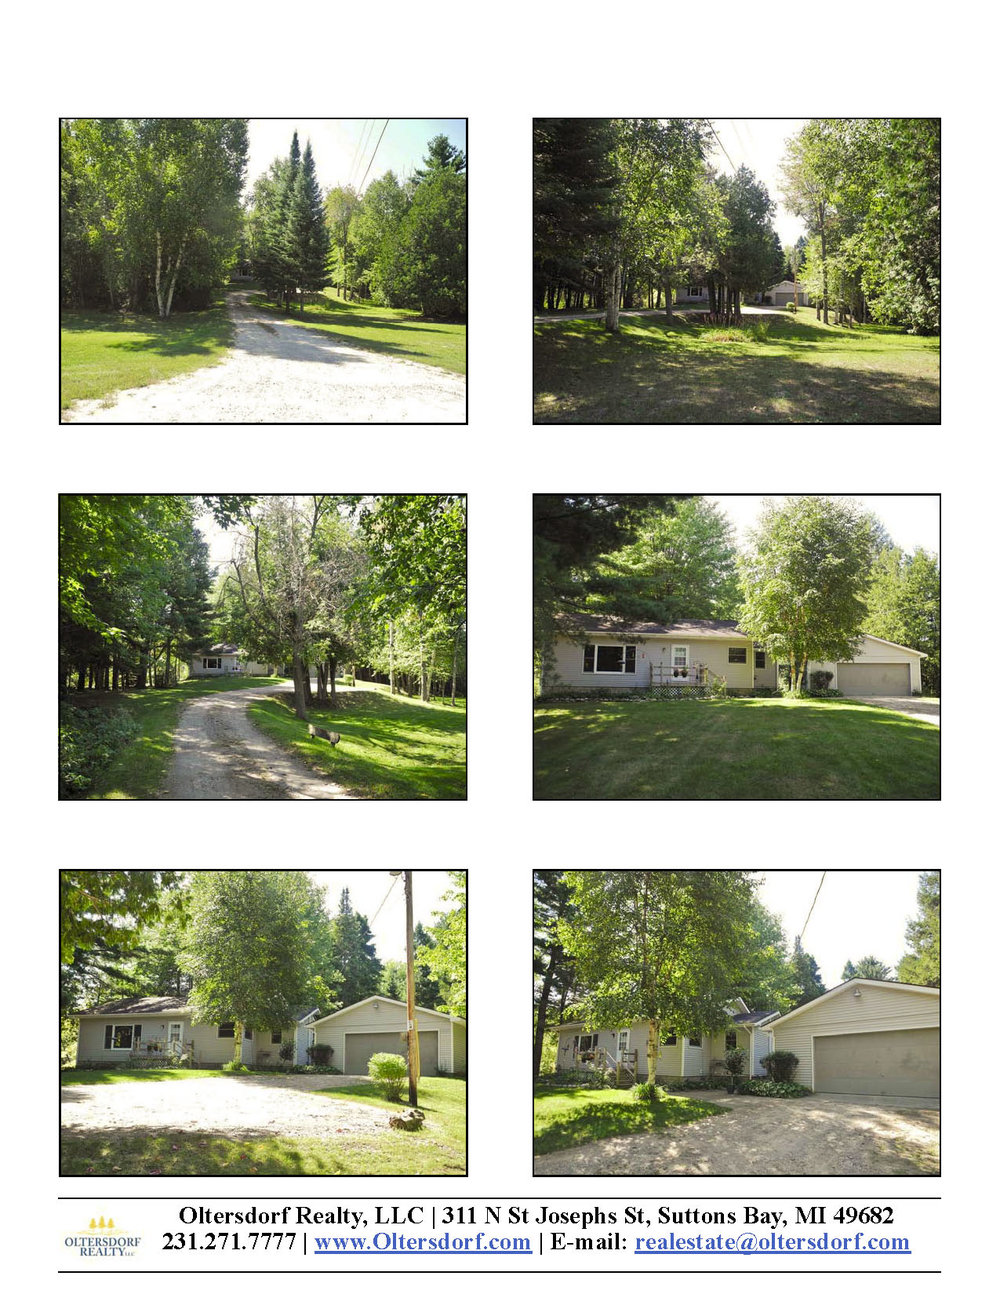 2566 S Pine View Road, Suttons Bay, MI – Affordable 3 Bedroom Suttons Bay Ranch Home for sale by Oltersdorf Realty - Marketing Packet (2).jpg